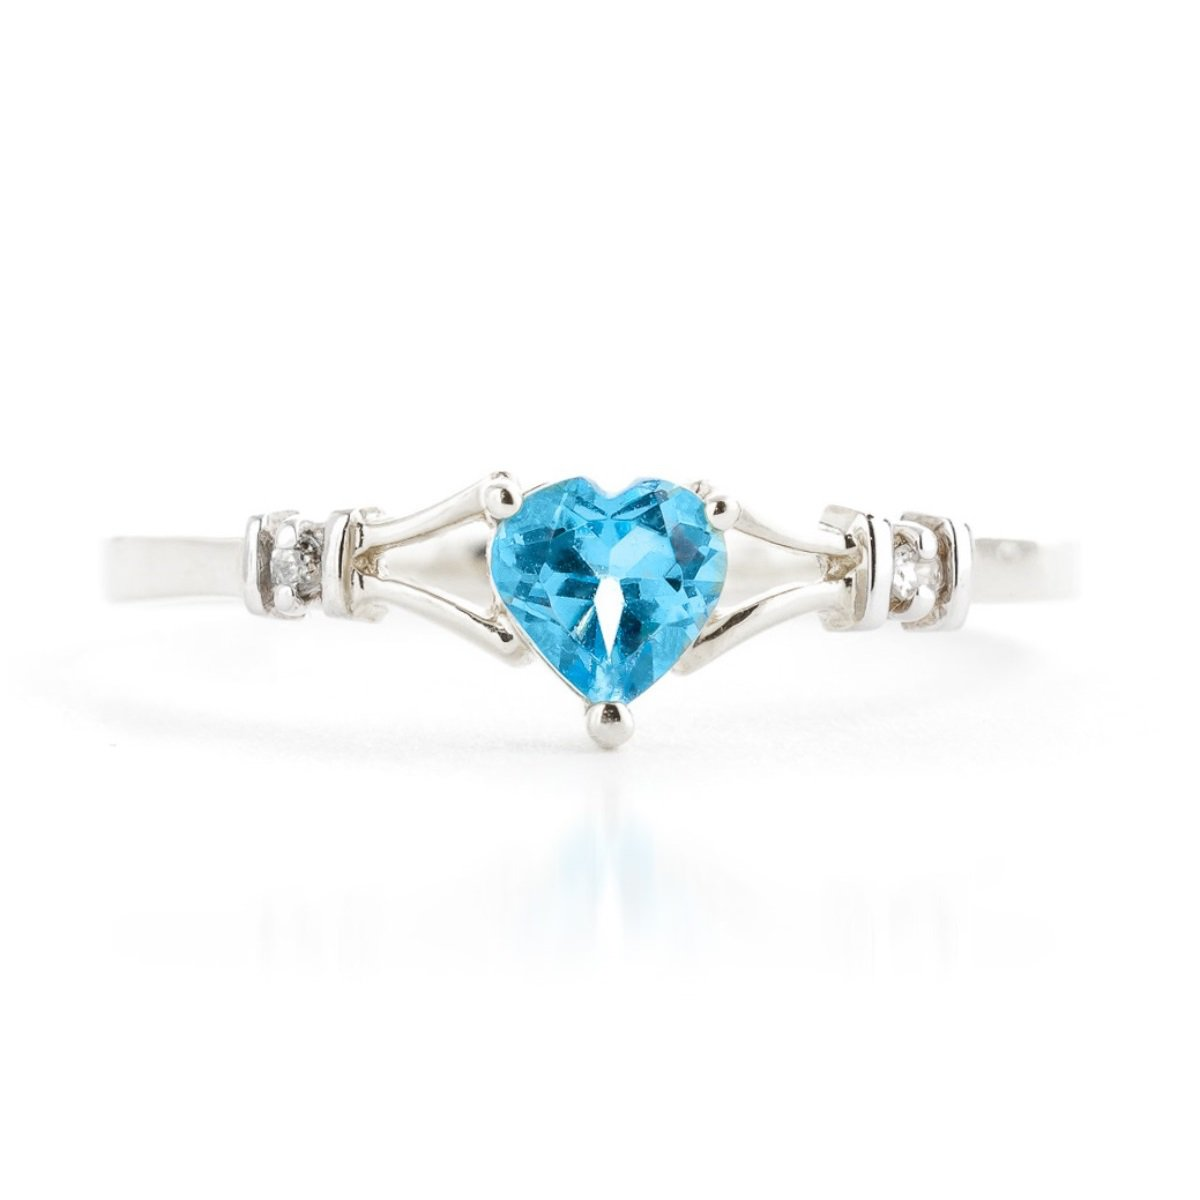 Blue Topaz Heart Diamond Ring Solid 14k White Gold 1277-W